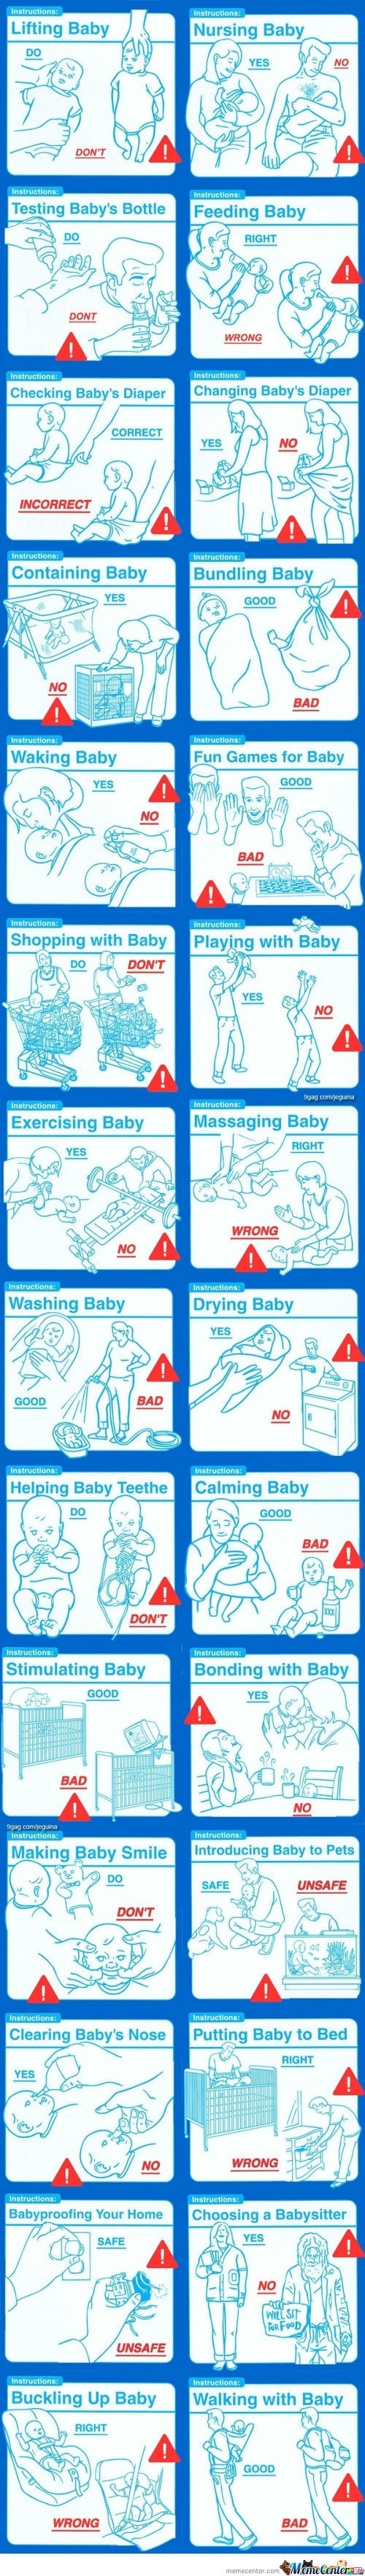 Taking Care Of Babies Wrongs And Rights